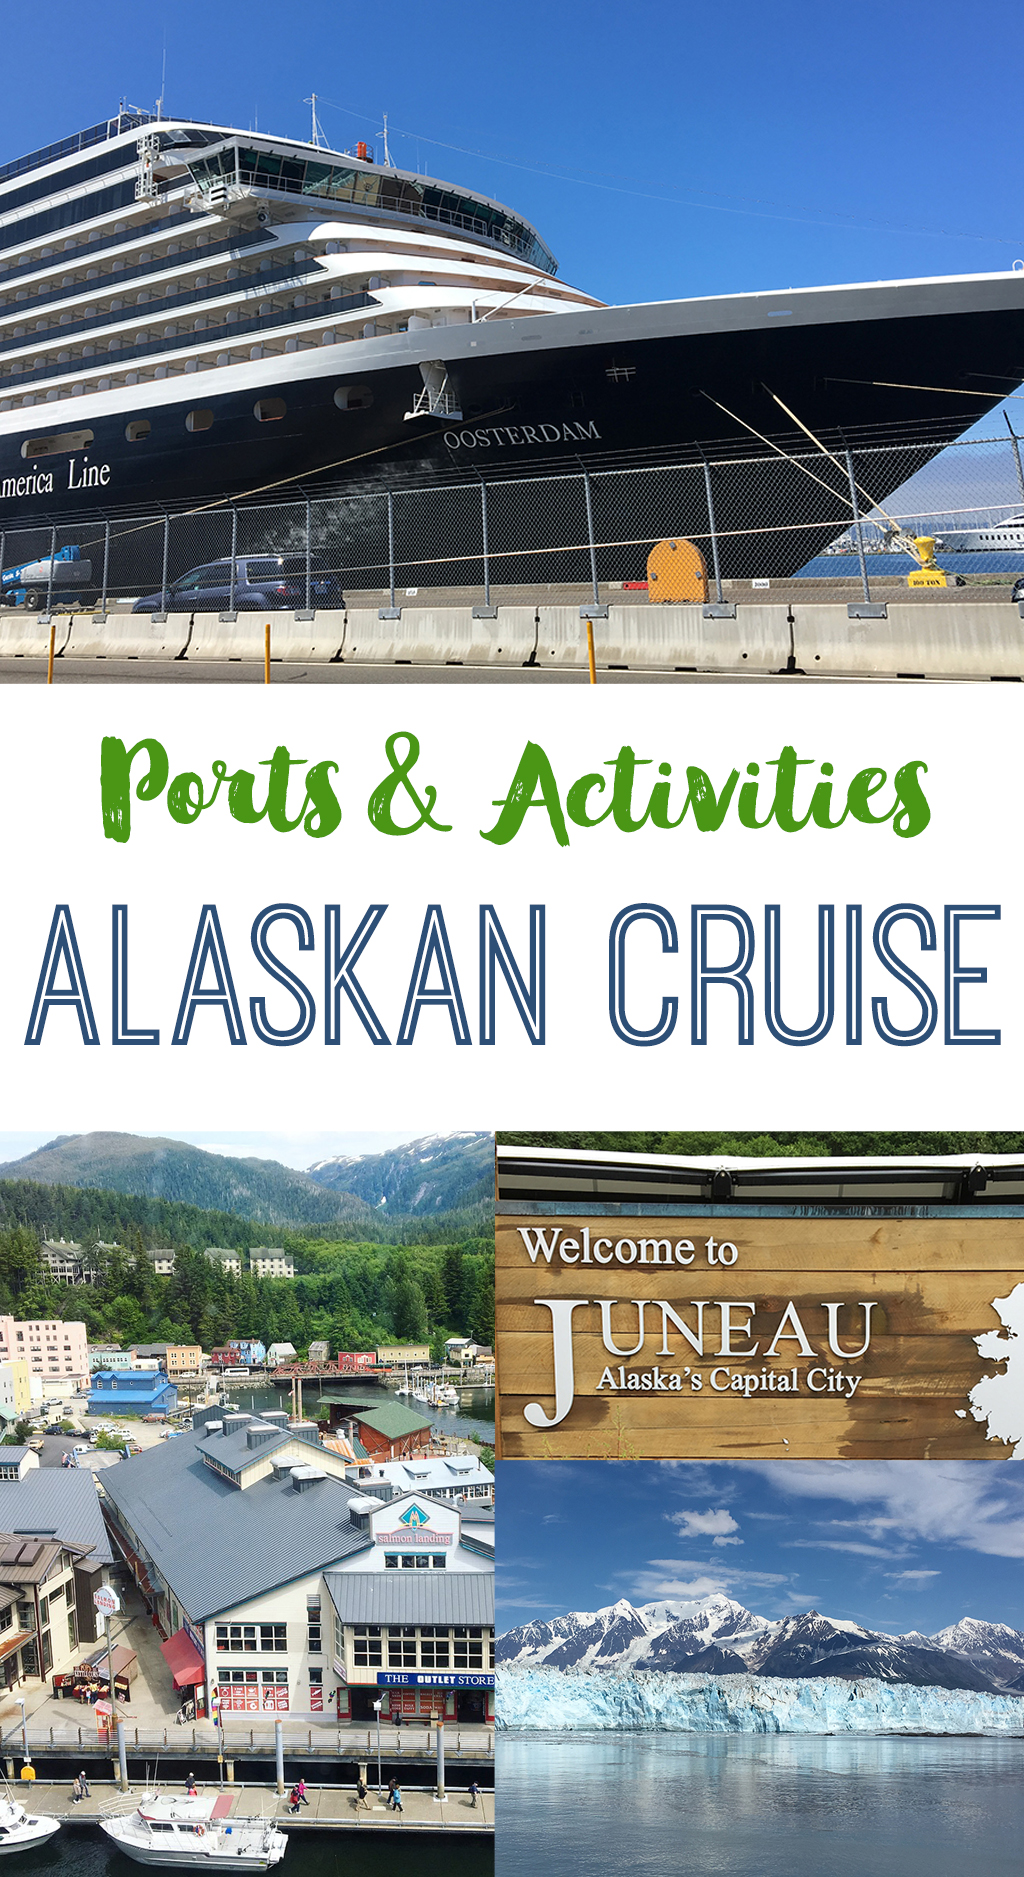 Best Excursion Ideas for an Alaskan Cruise. We took our family on an Alaskan cruise during the summer.  I'm so excited to share the fun we had, and the exciting things we did at each of the stops.